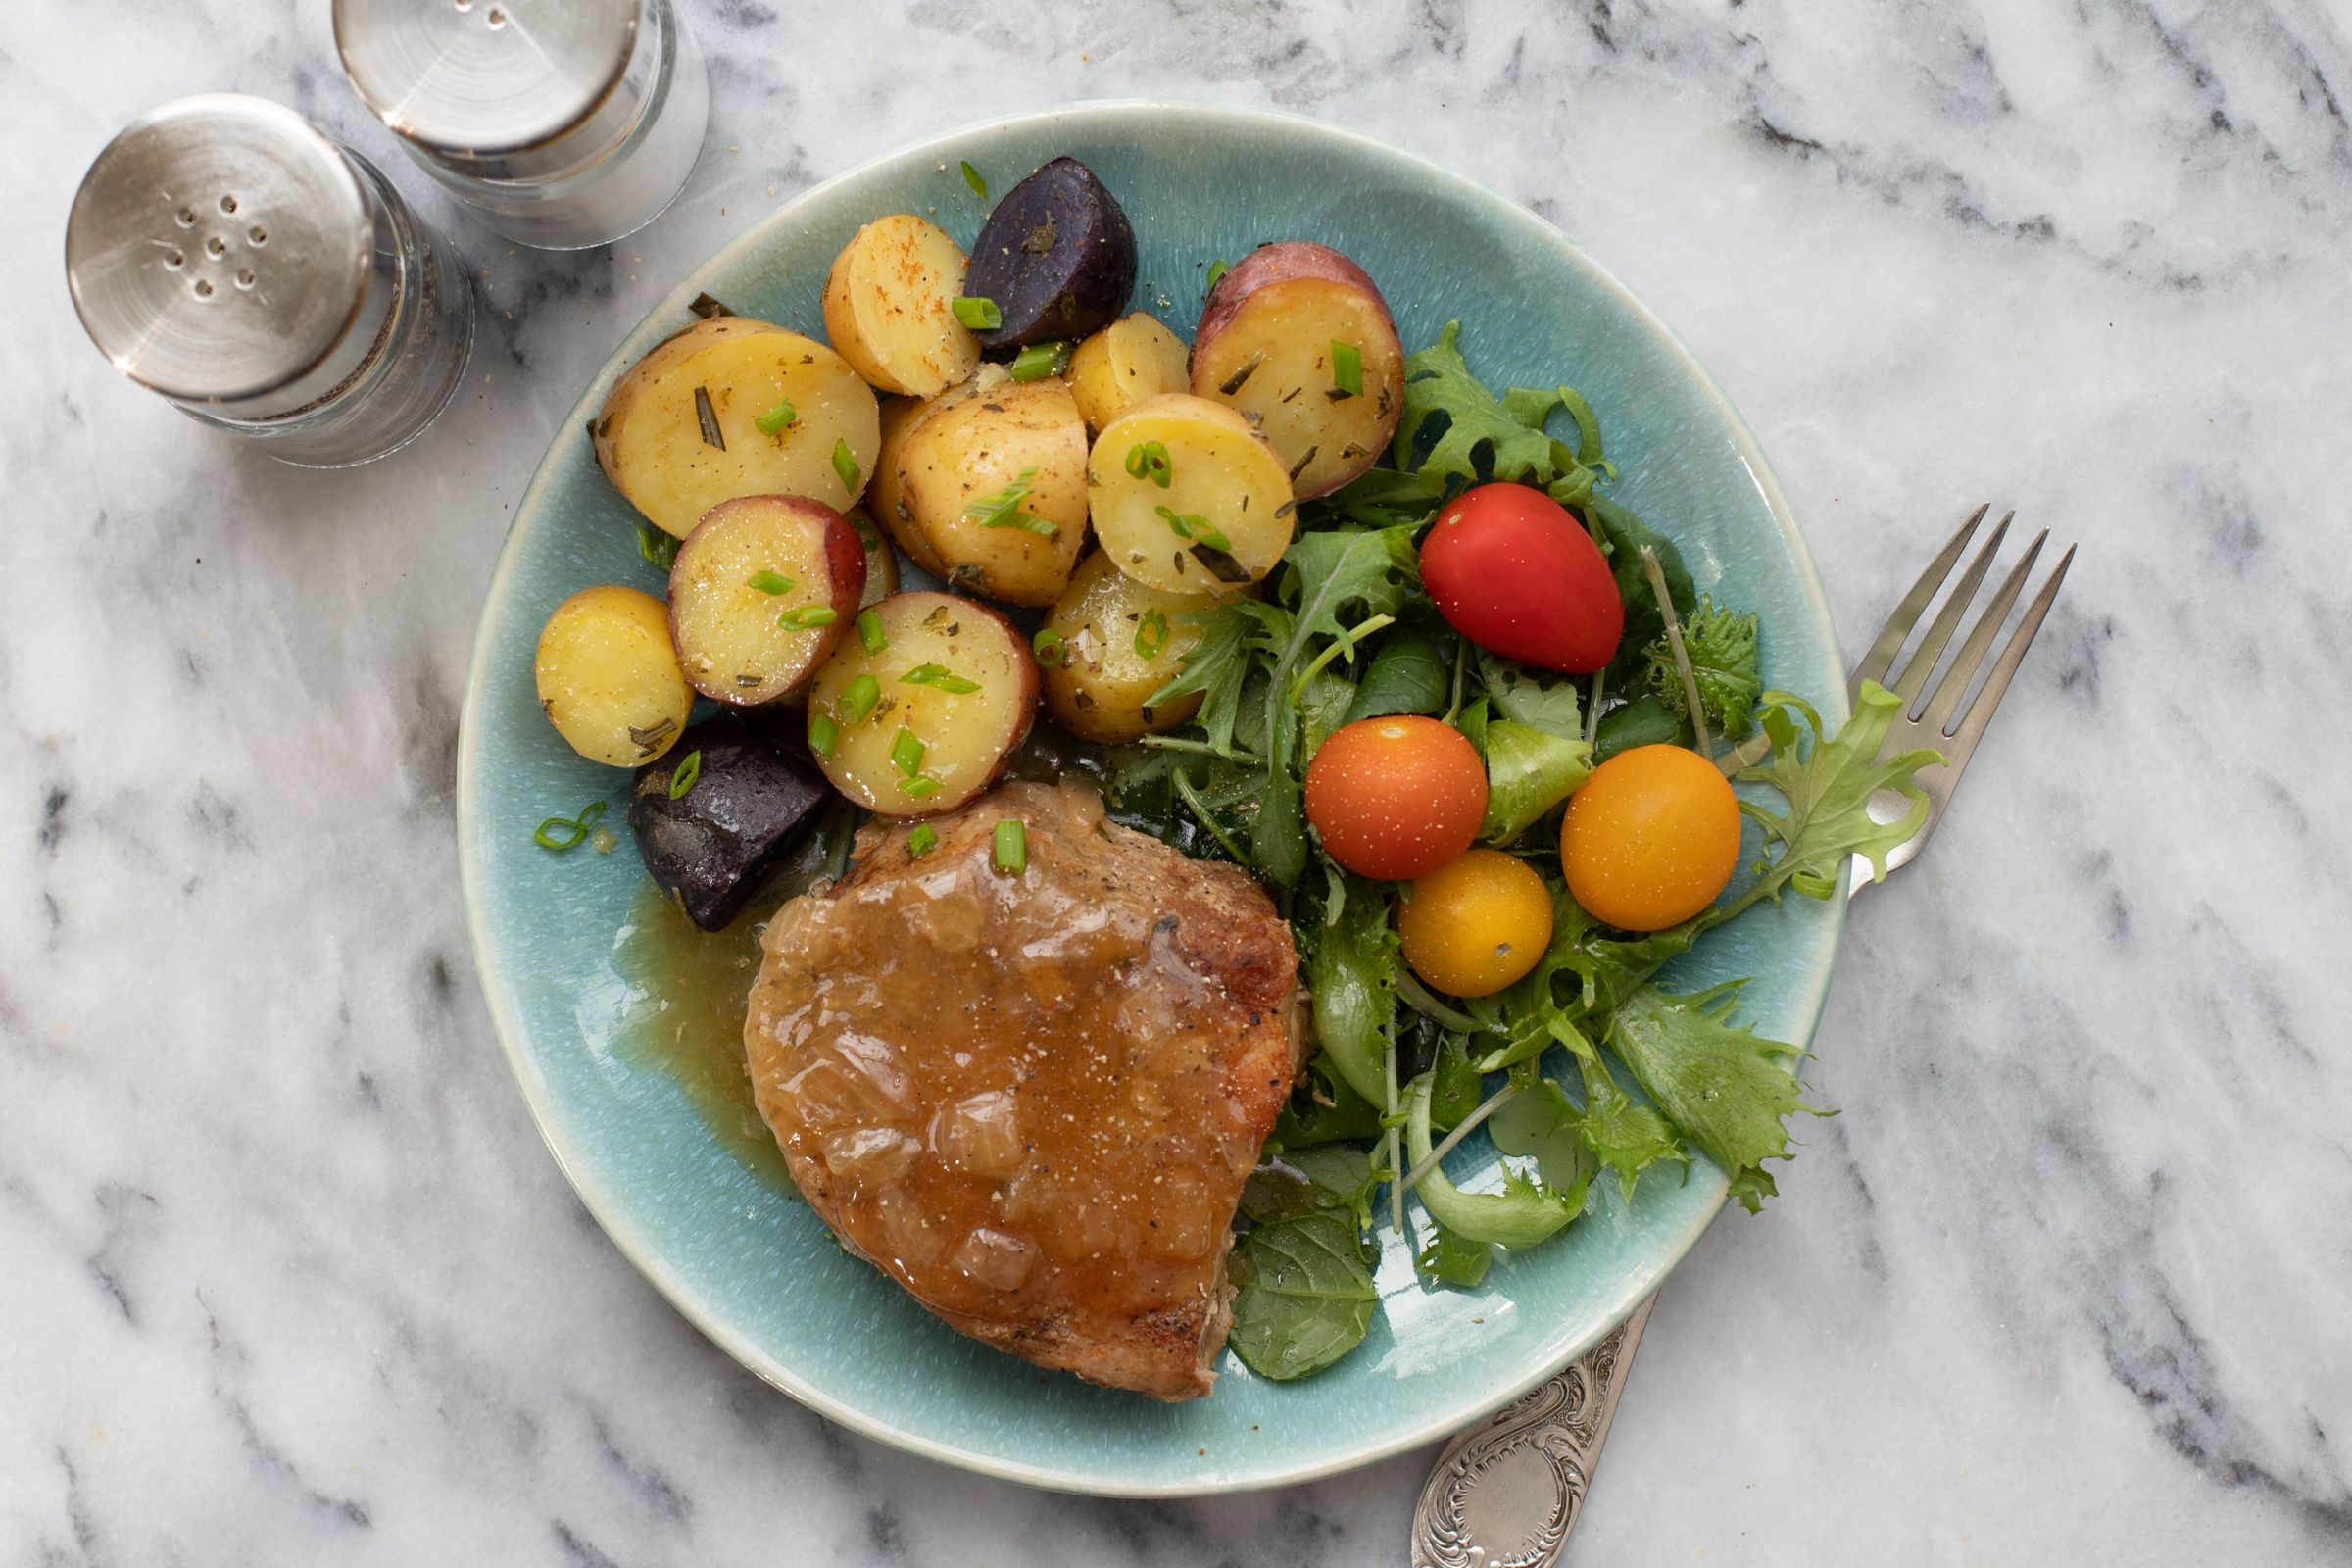 Instant Pot Pork Chops and Potatoes Are a Complete One-Pot Meal